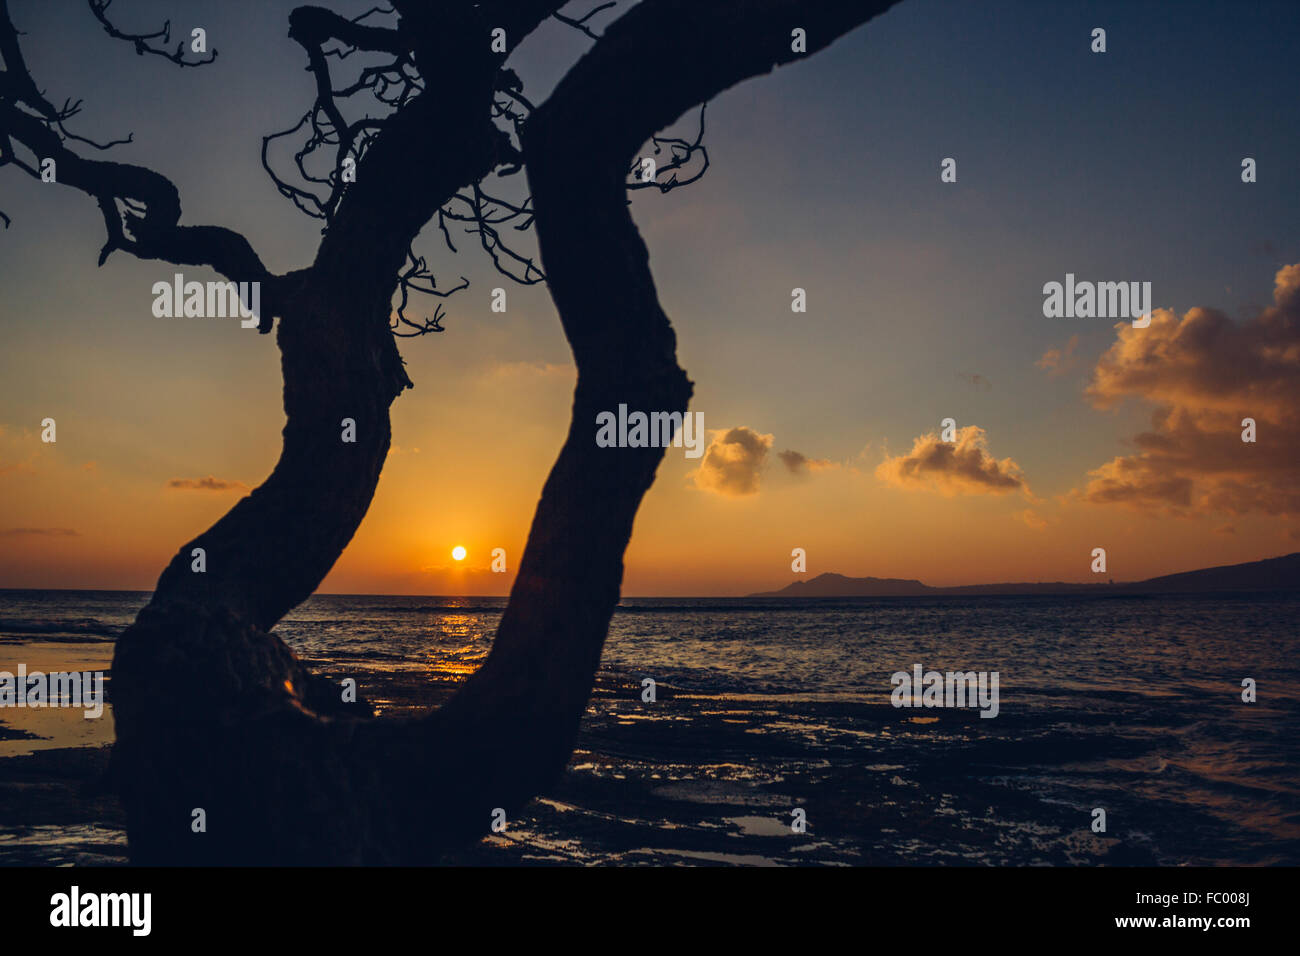 La silhouette des arbres de la pointe Portlock, coucher de soleil sur Oahu, Hawaii, USA avec composition horizontale. Photo Stock